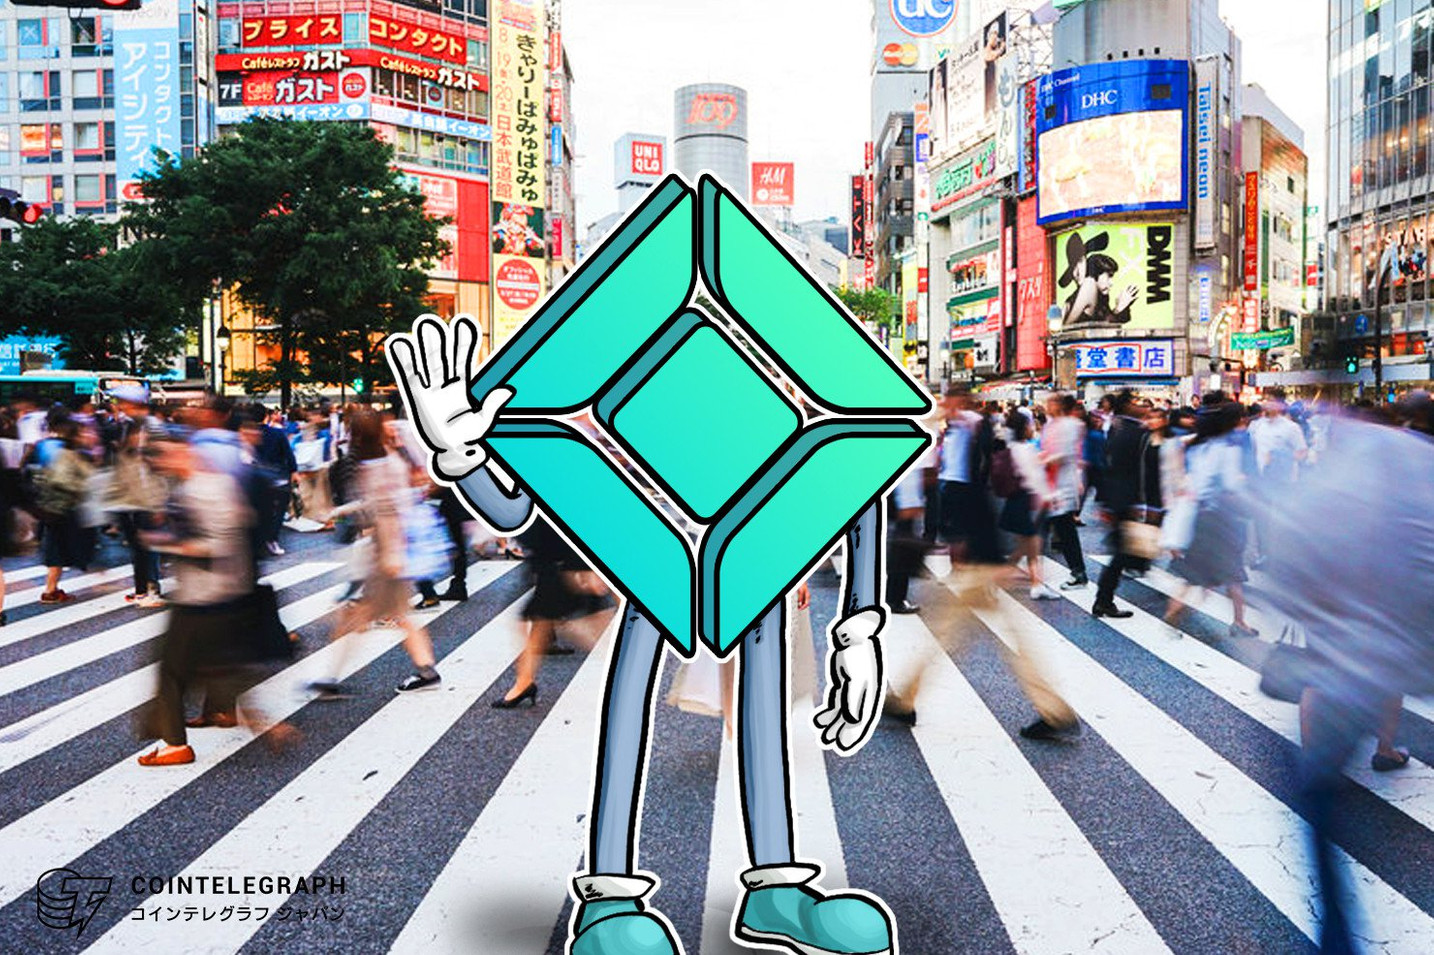 Coincheck(コインチェック)の評判・口コミは?登録方法から特徴まで徹底解説!